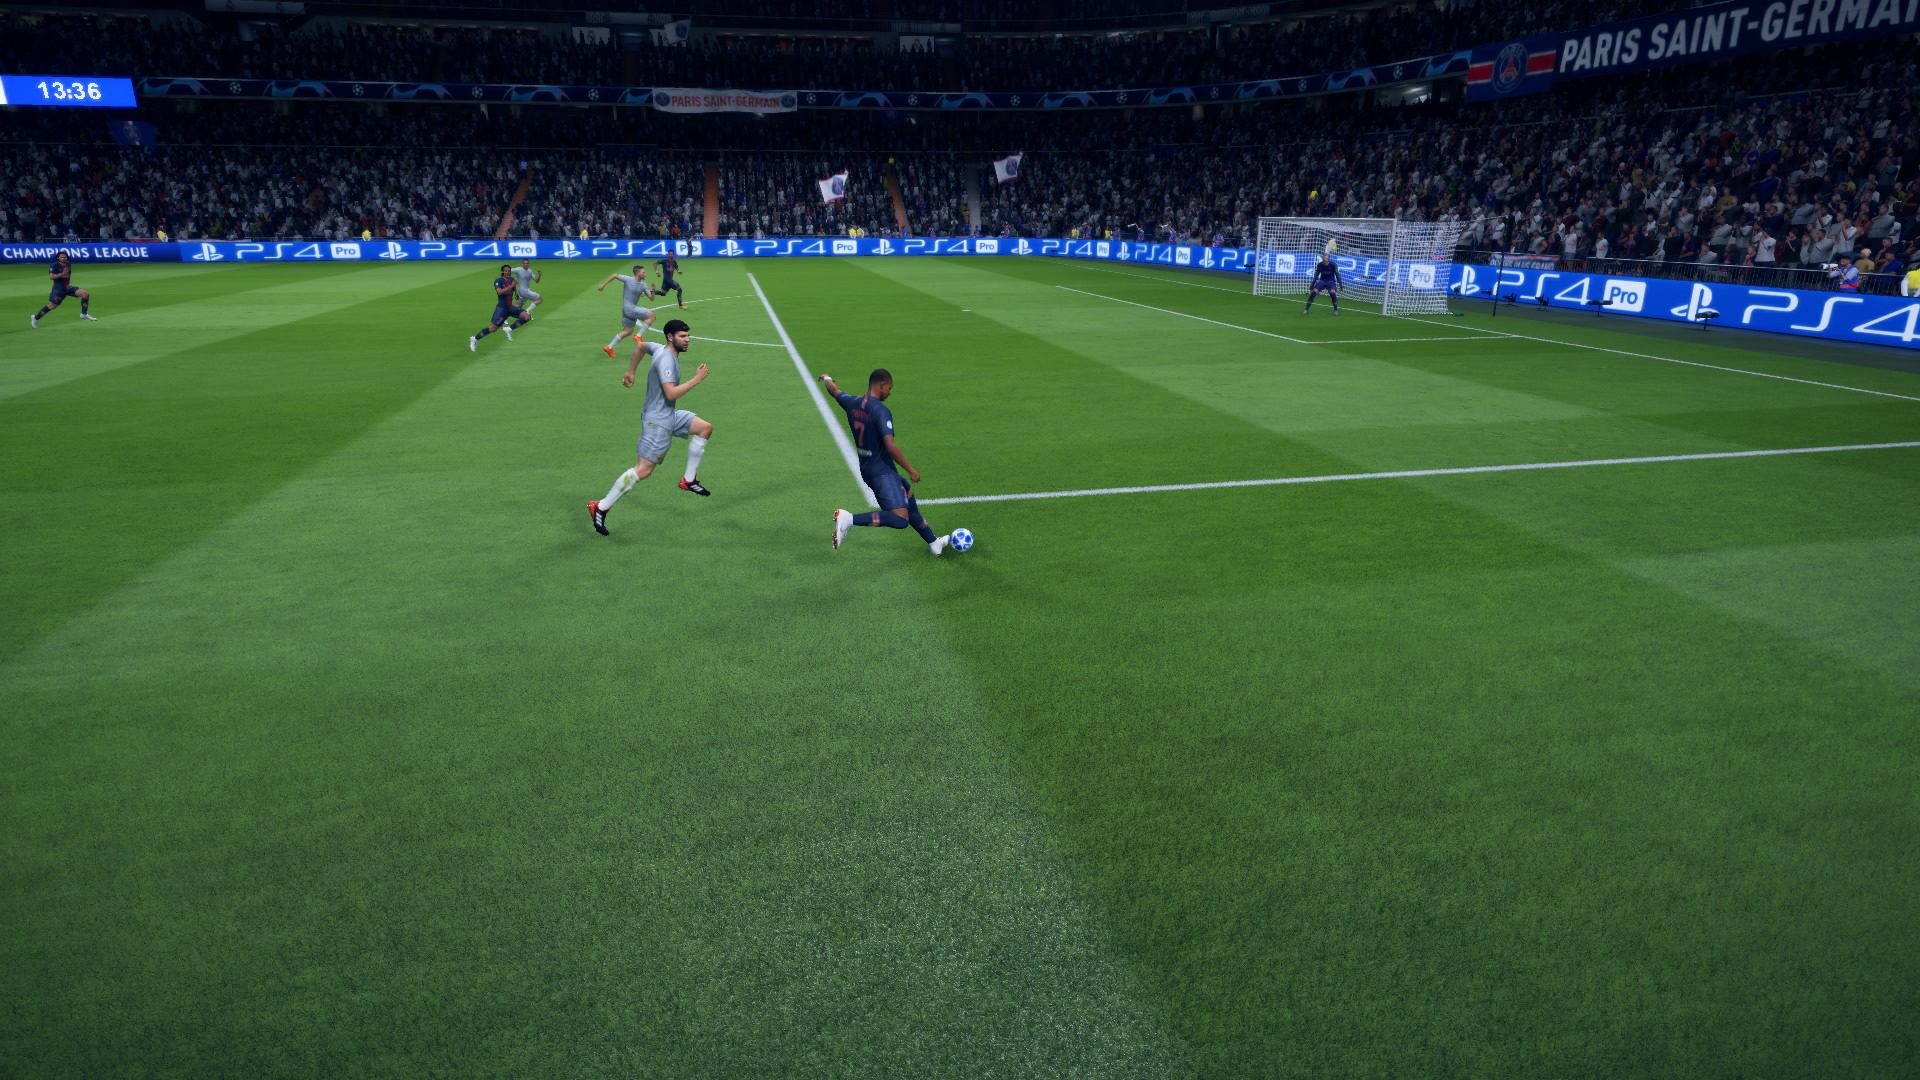 FIFA 19 tips - How to score, defend, and keep the ball - VG247